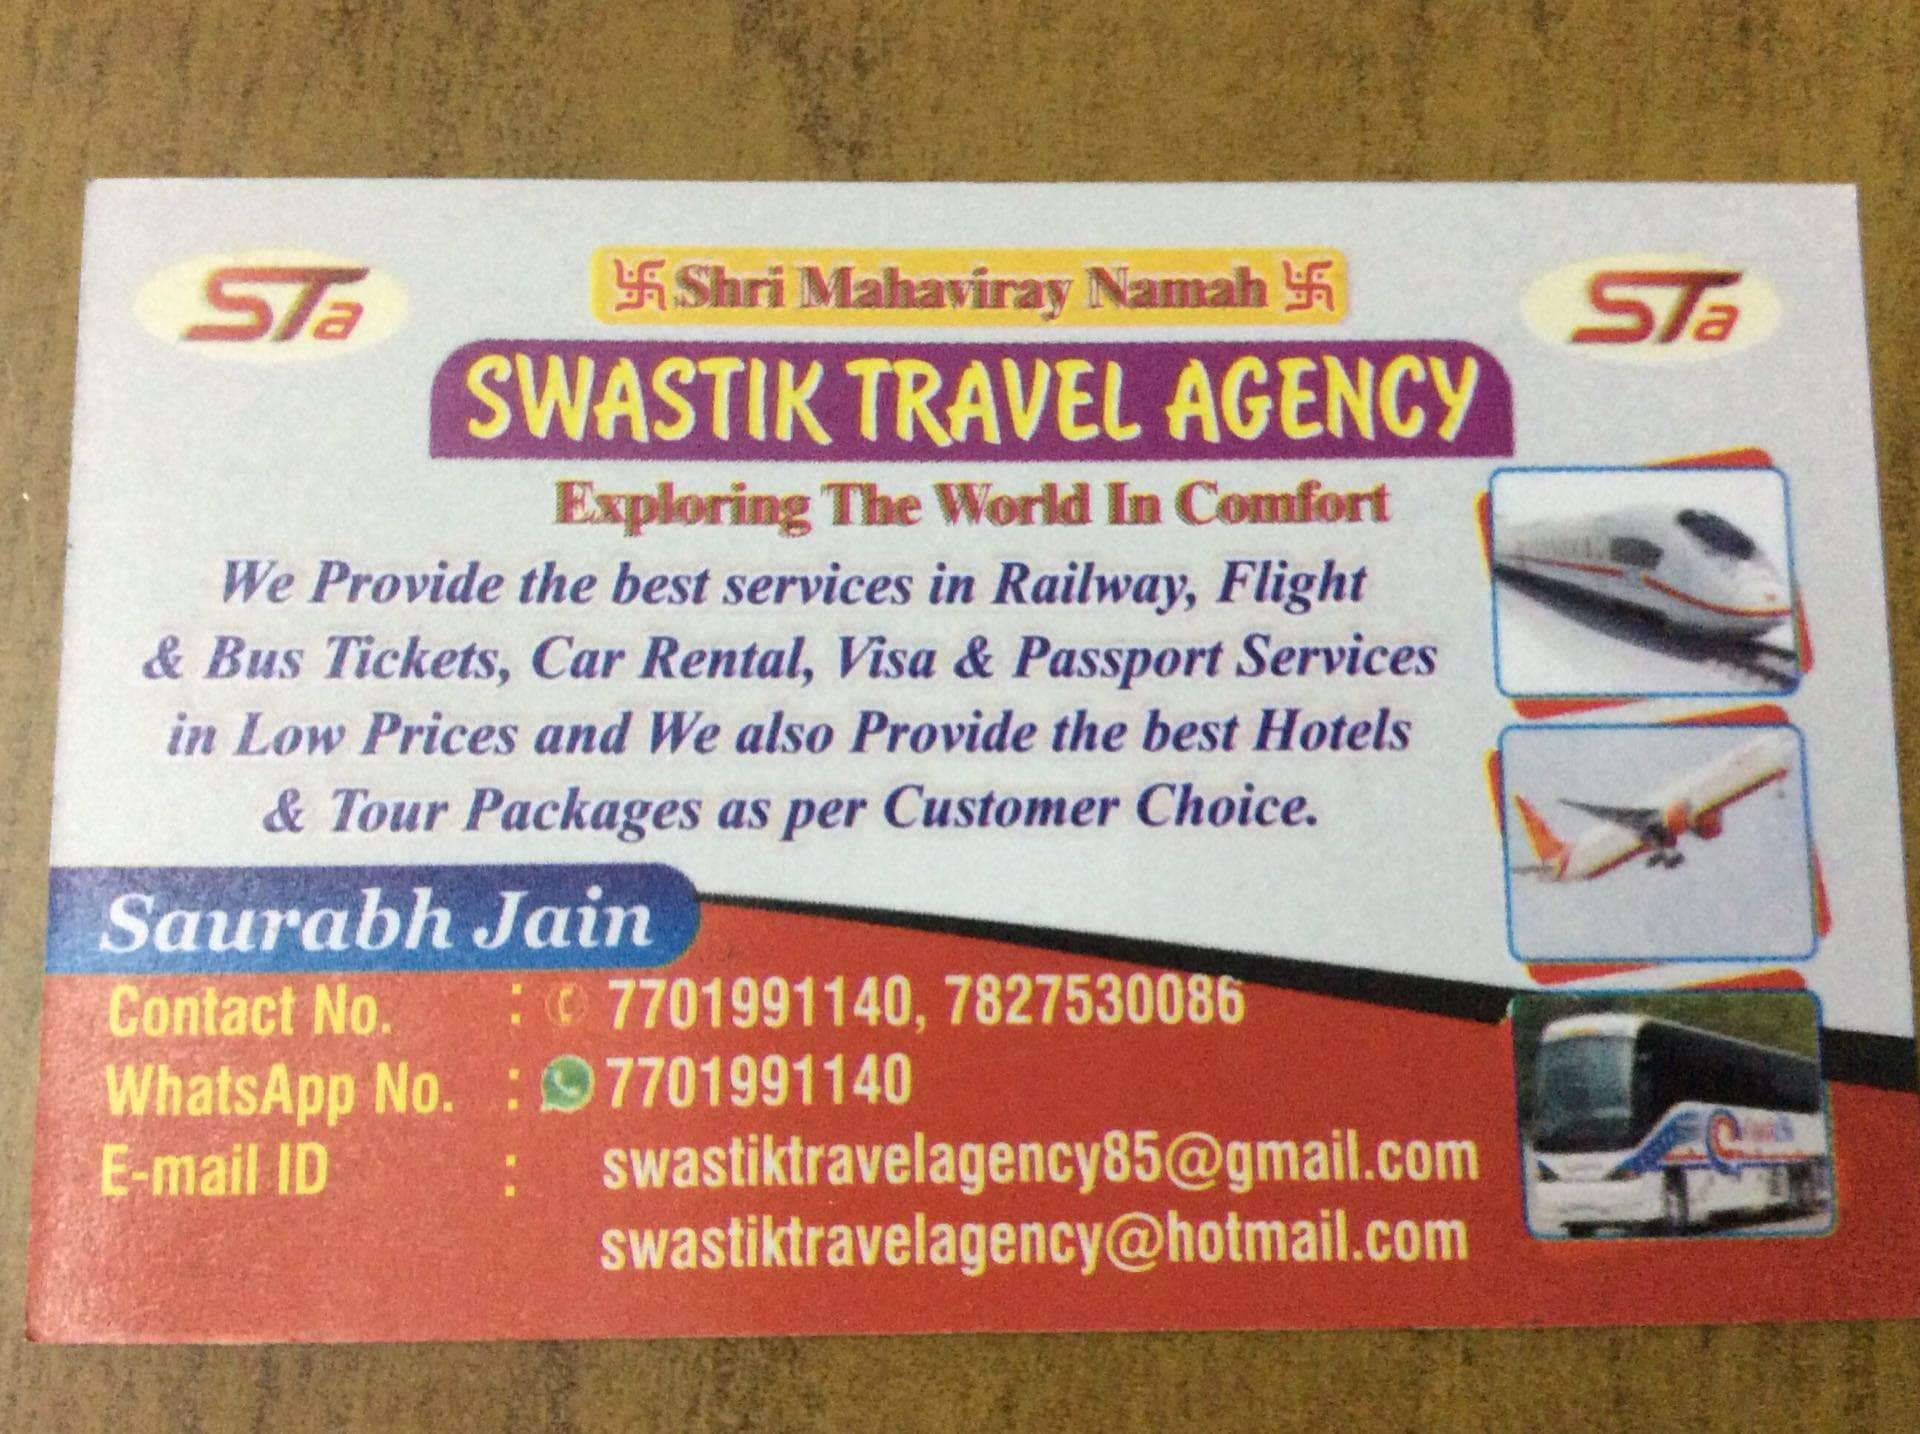 Travel Agents In Delhi For Railway Ticket Booking | lifehacked1st com